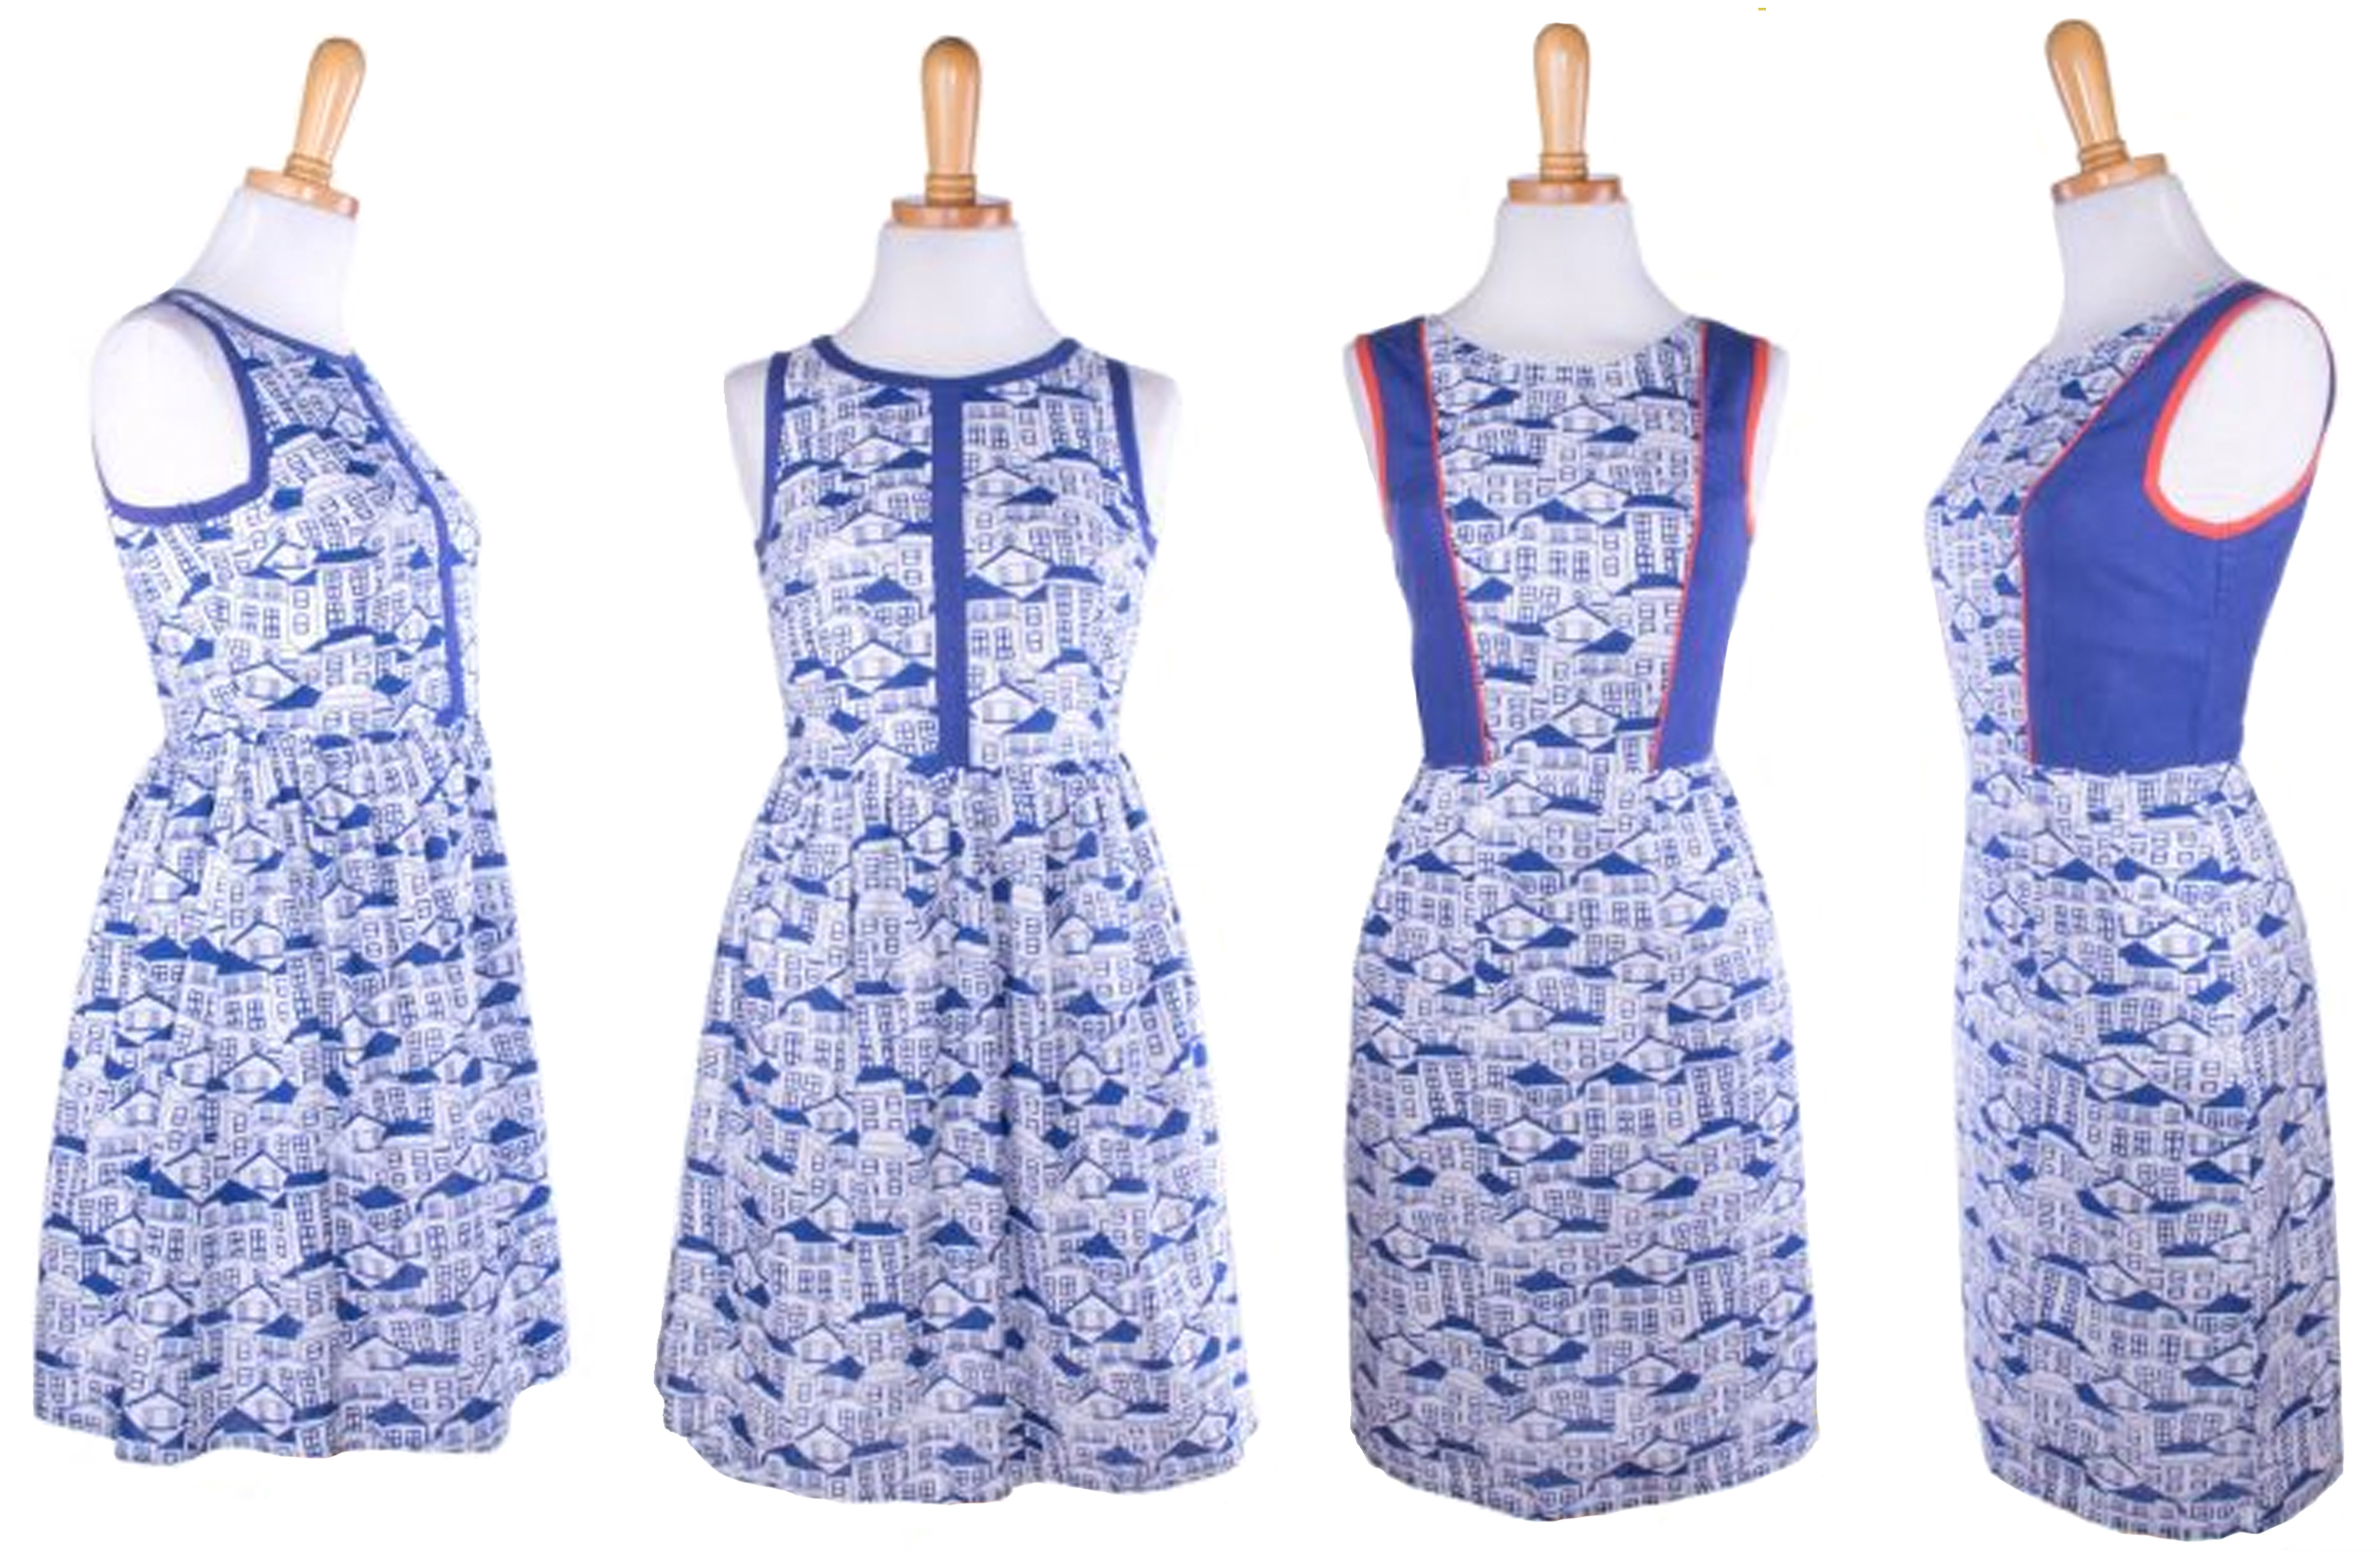 Left: Summerfest Dress (Houses)      Right: Starboard Dress (Houses)